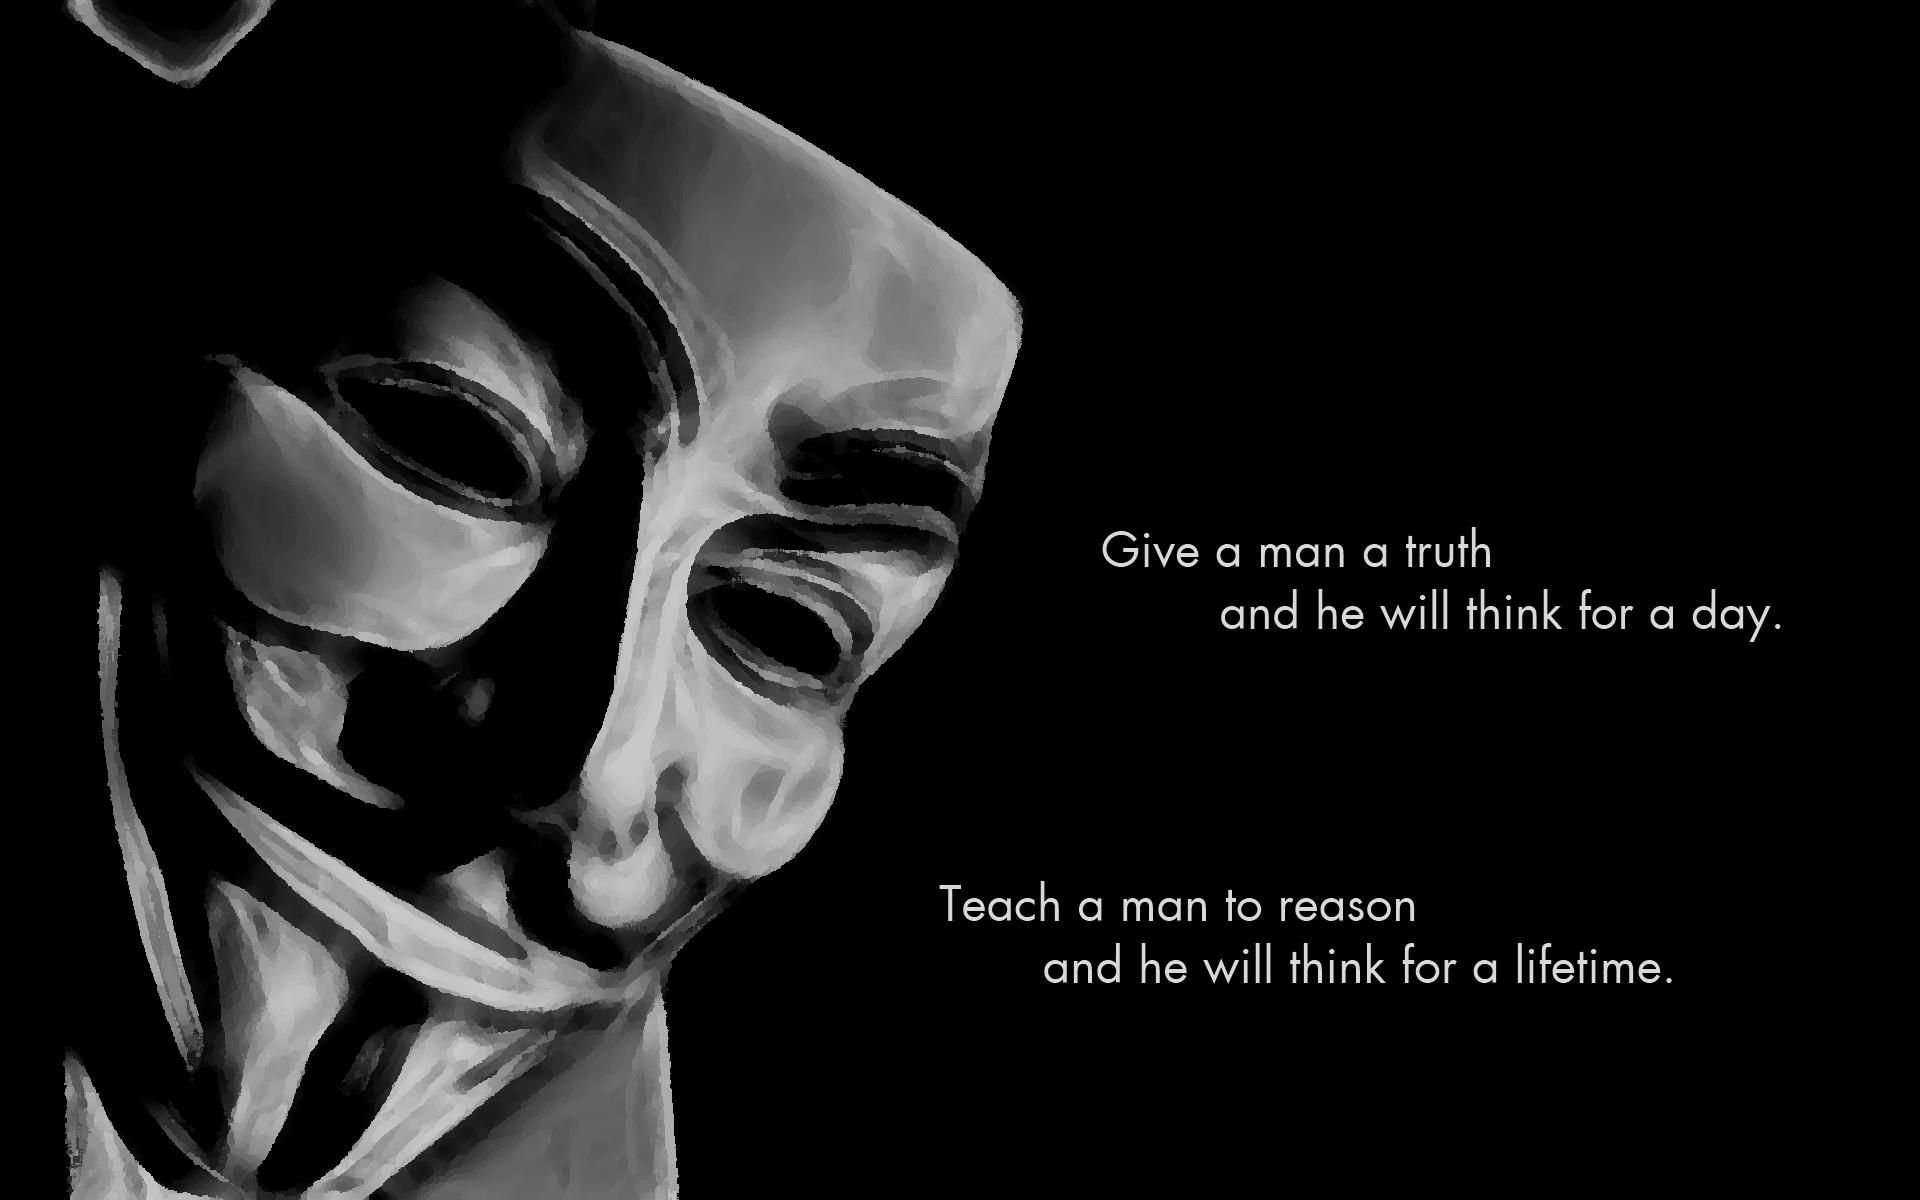 Great quote on the truth and how important it is guy fawkes mask for anonymous